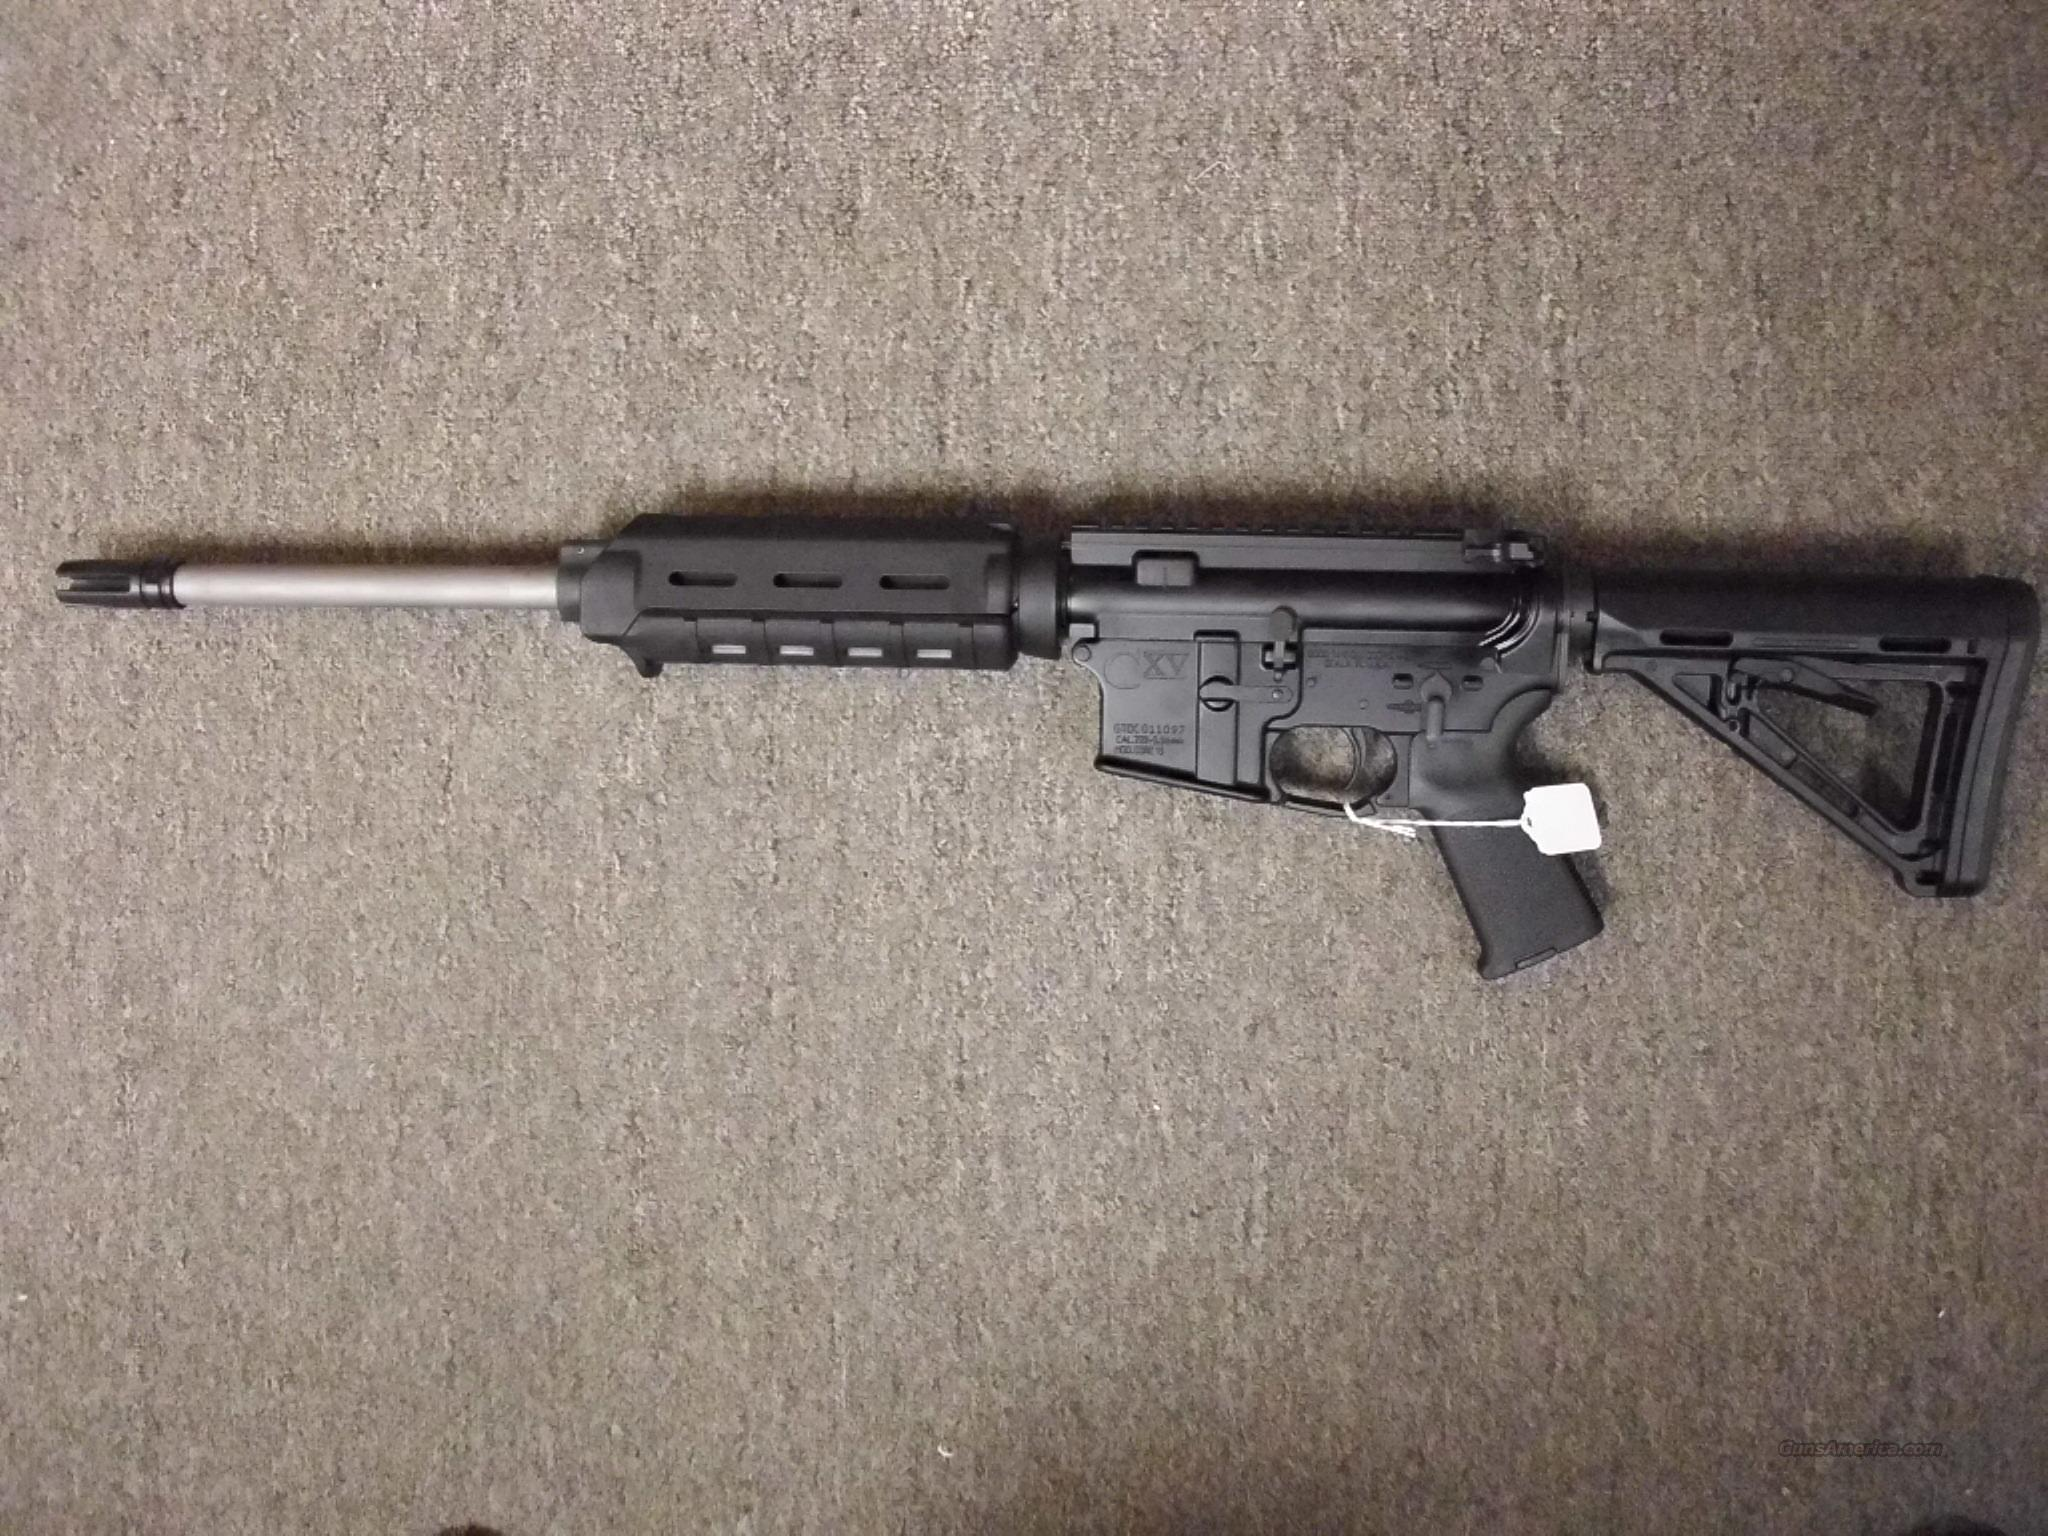 Core 15 M4 in .300 AAC Blackout  Guns > Rifles > AR-15 Rifles - Small Manufacturers > Complete Rifle